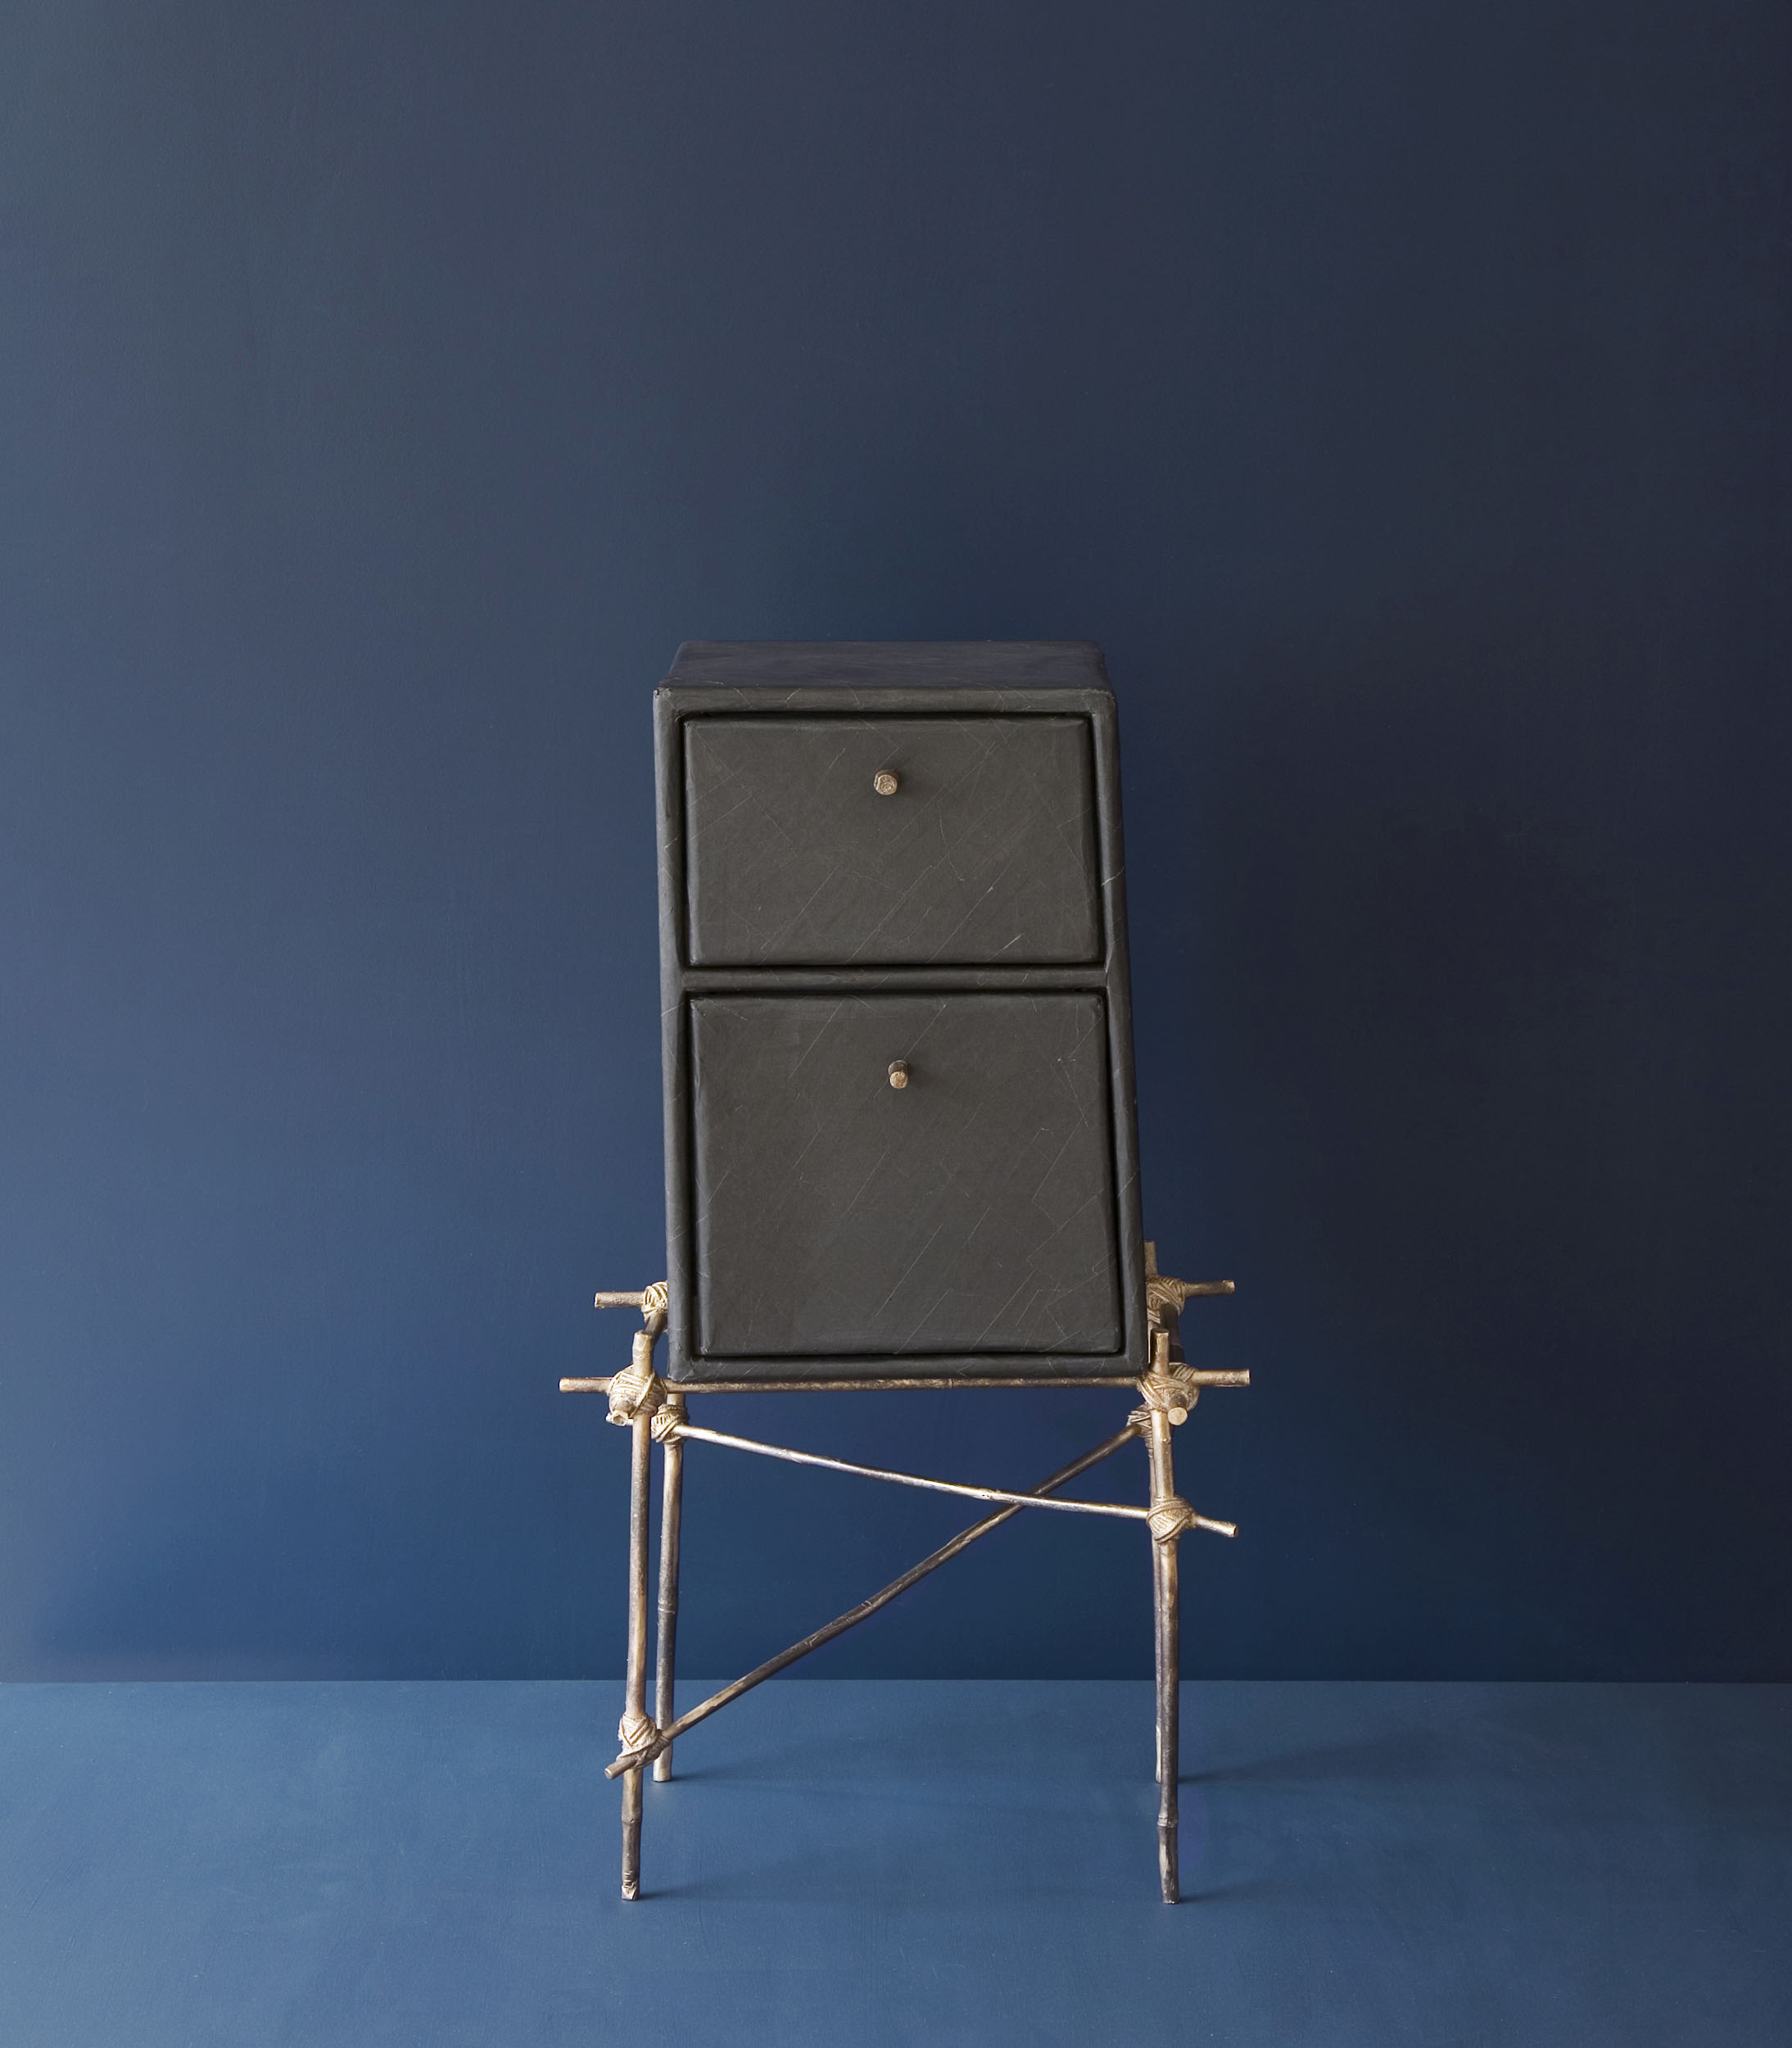 Enfant Terrible drawer unit with bronze cast bamboo frame and black gum paper drawers